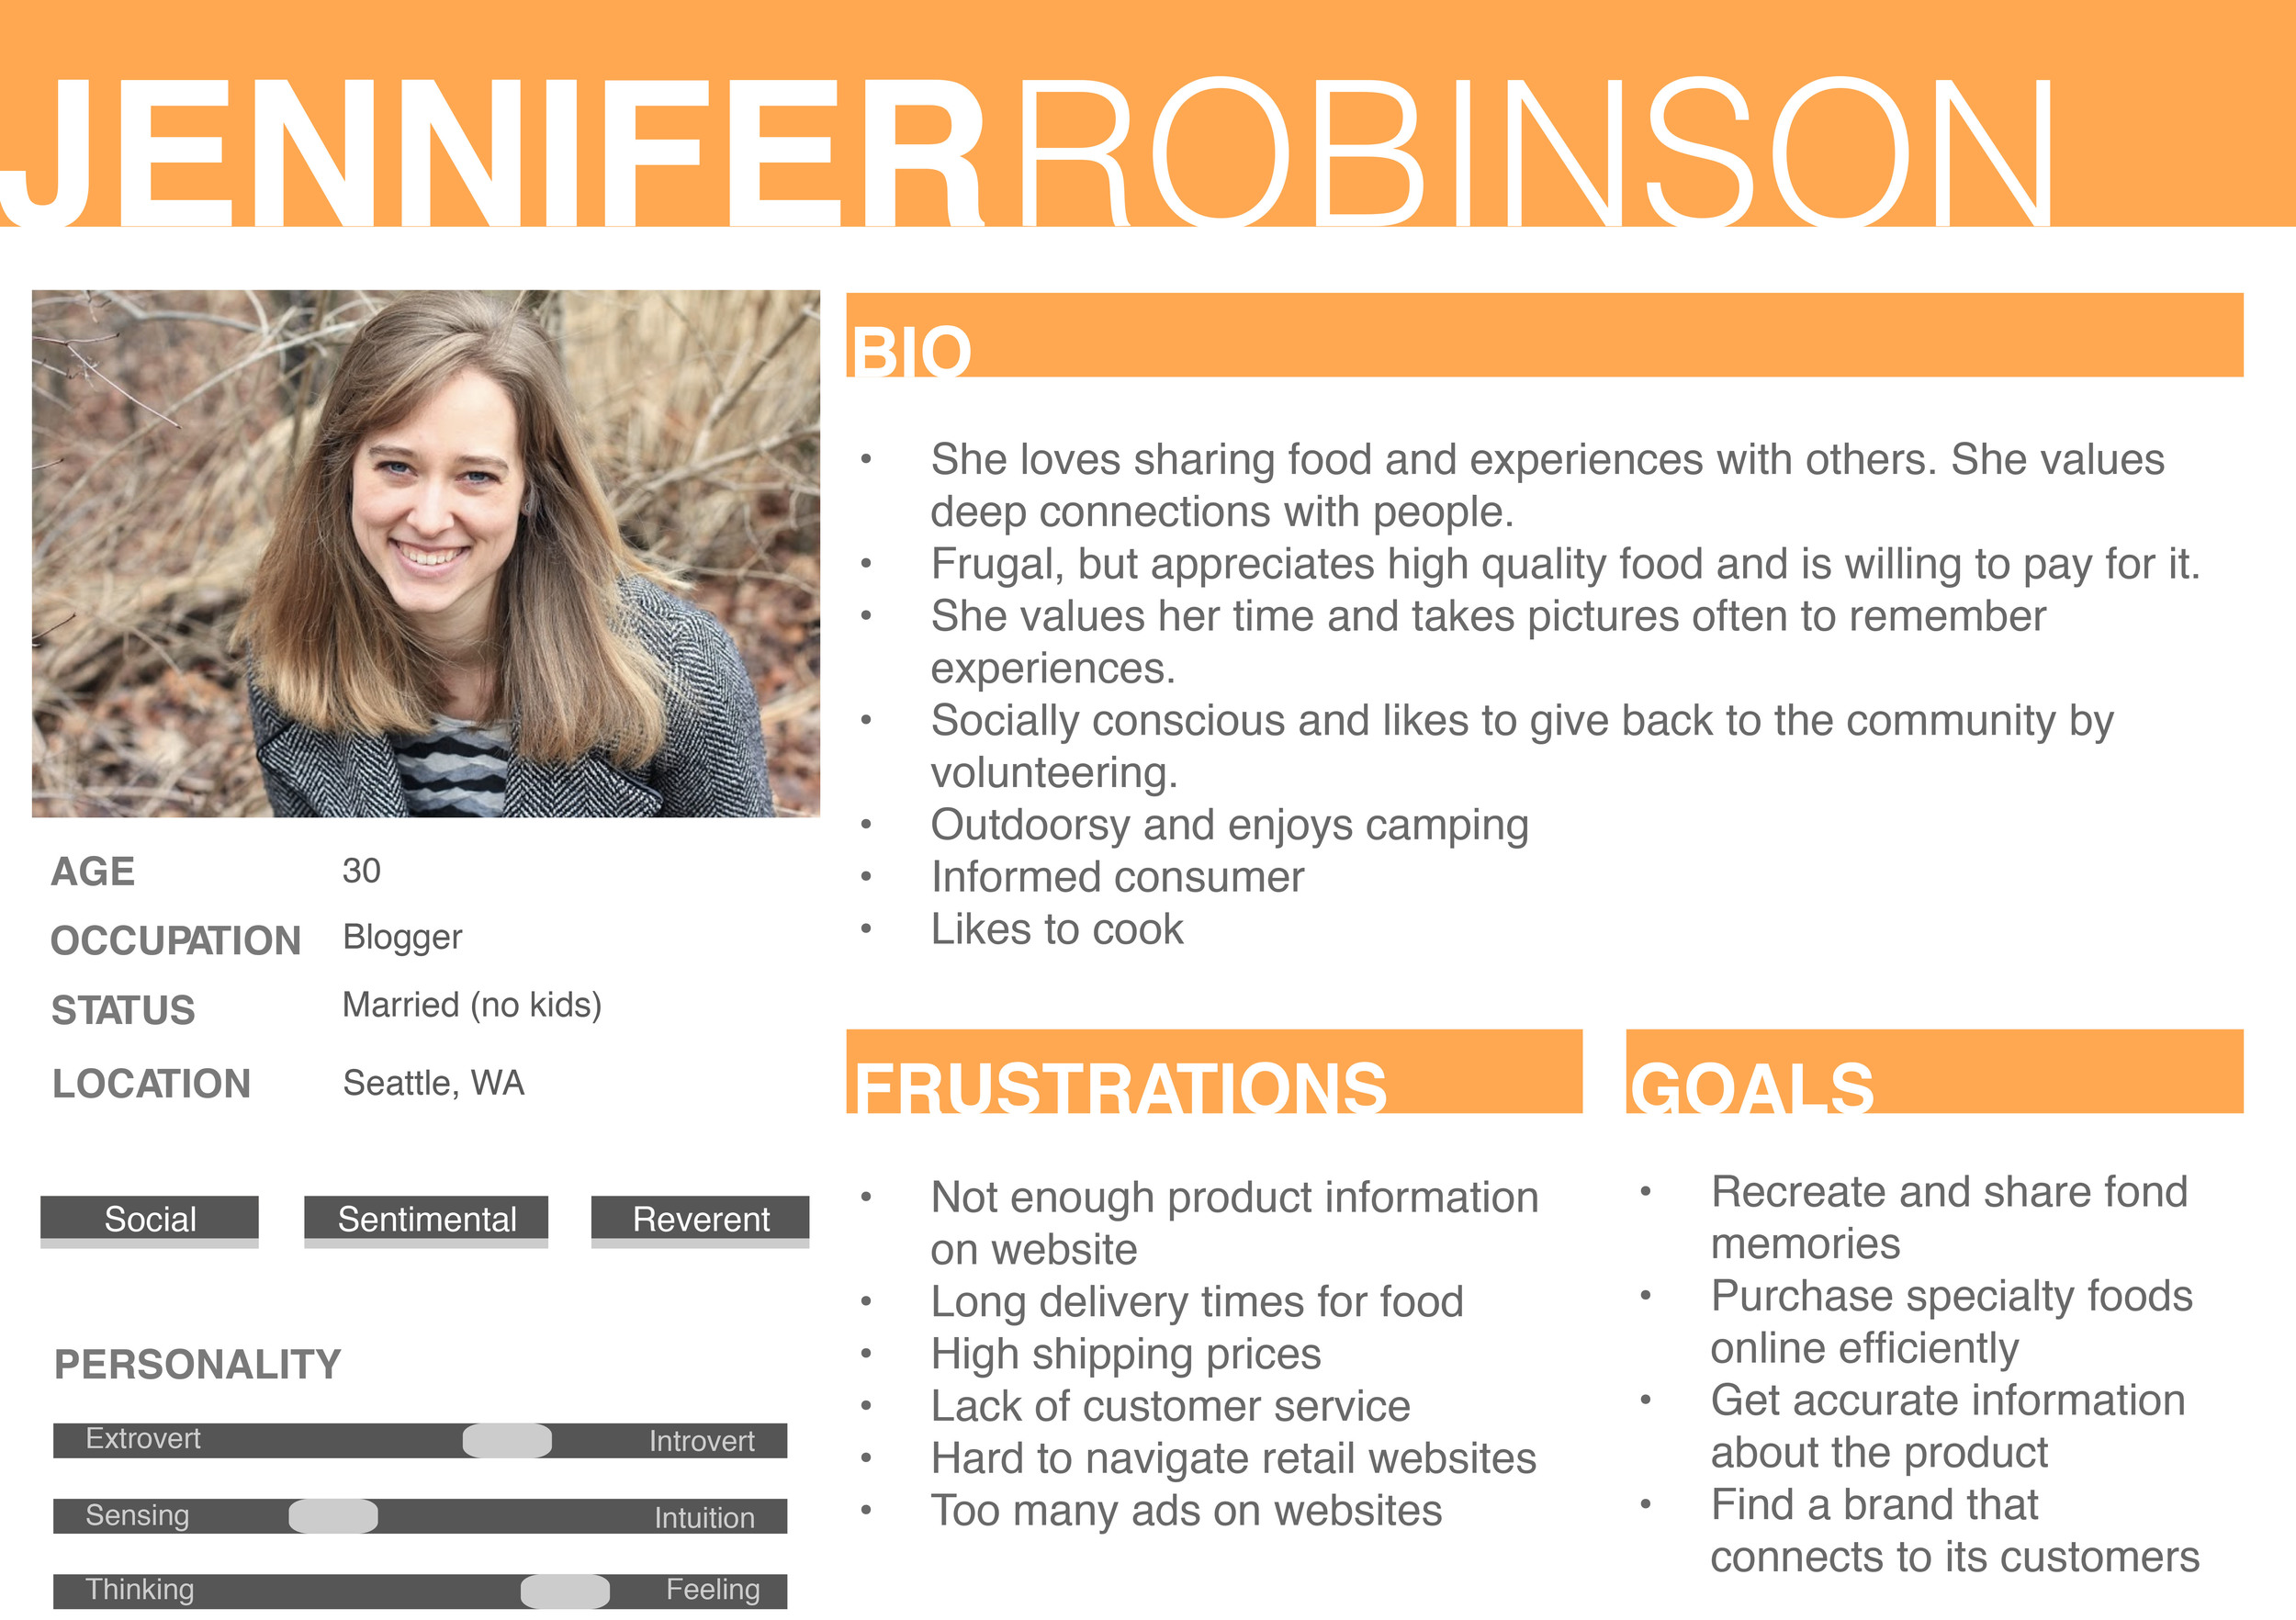 our persona, jennifer robinson